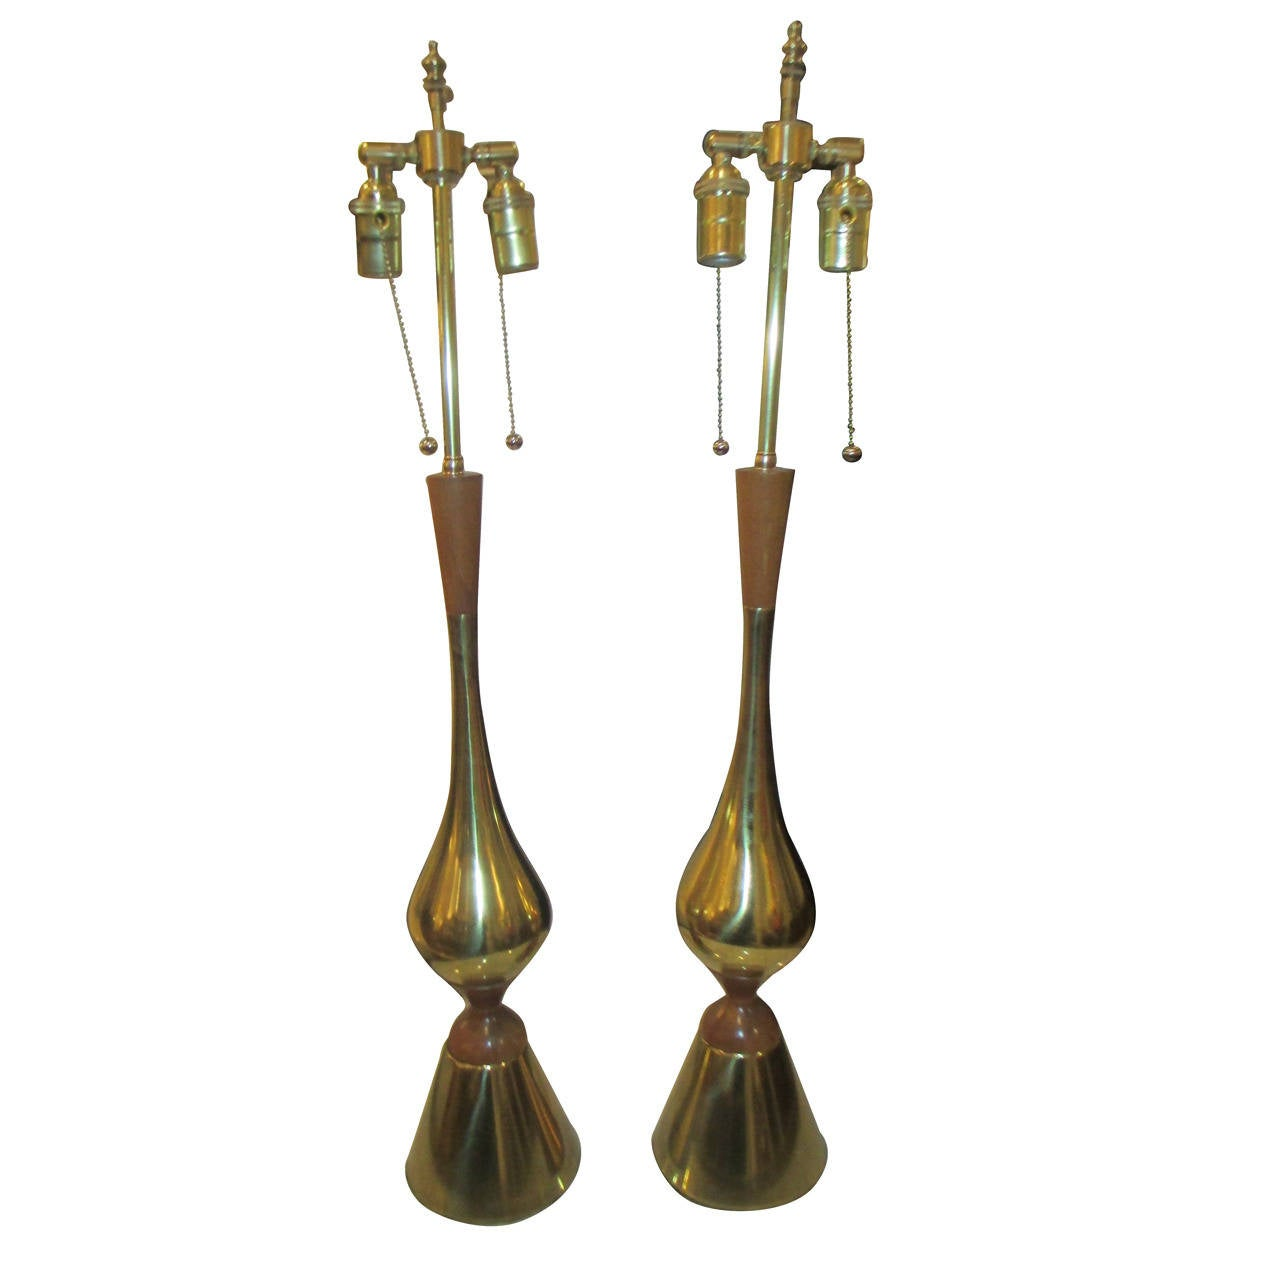 of american modern brass and wood tall table lamps for sale at 1stdibs. Black Bedroom Furniture Sets. Home Design Ideas